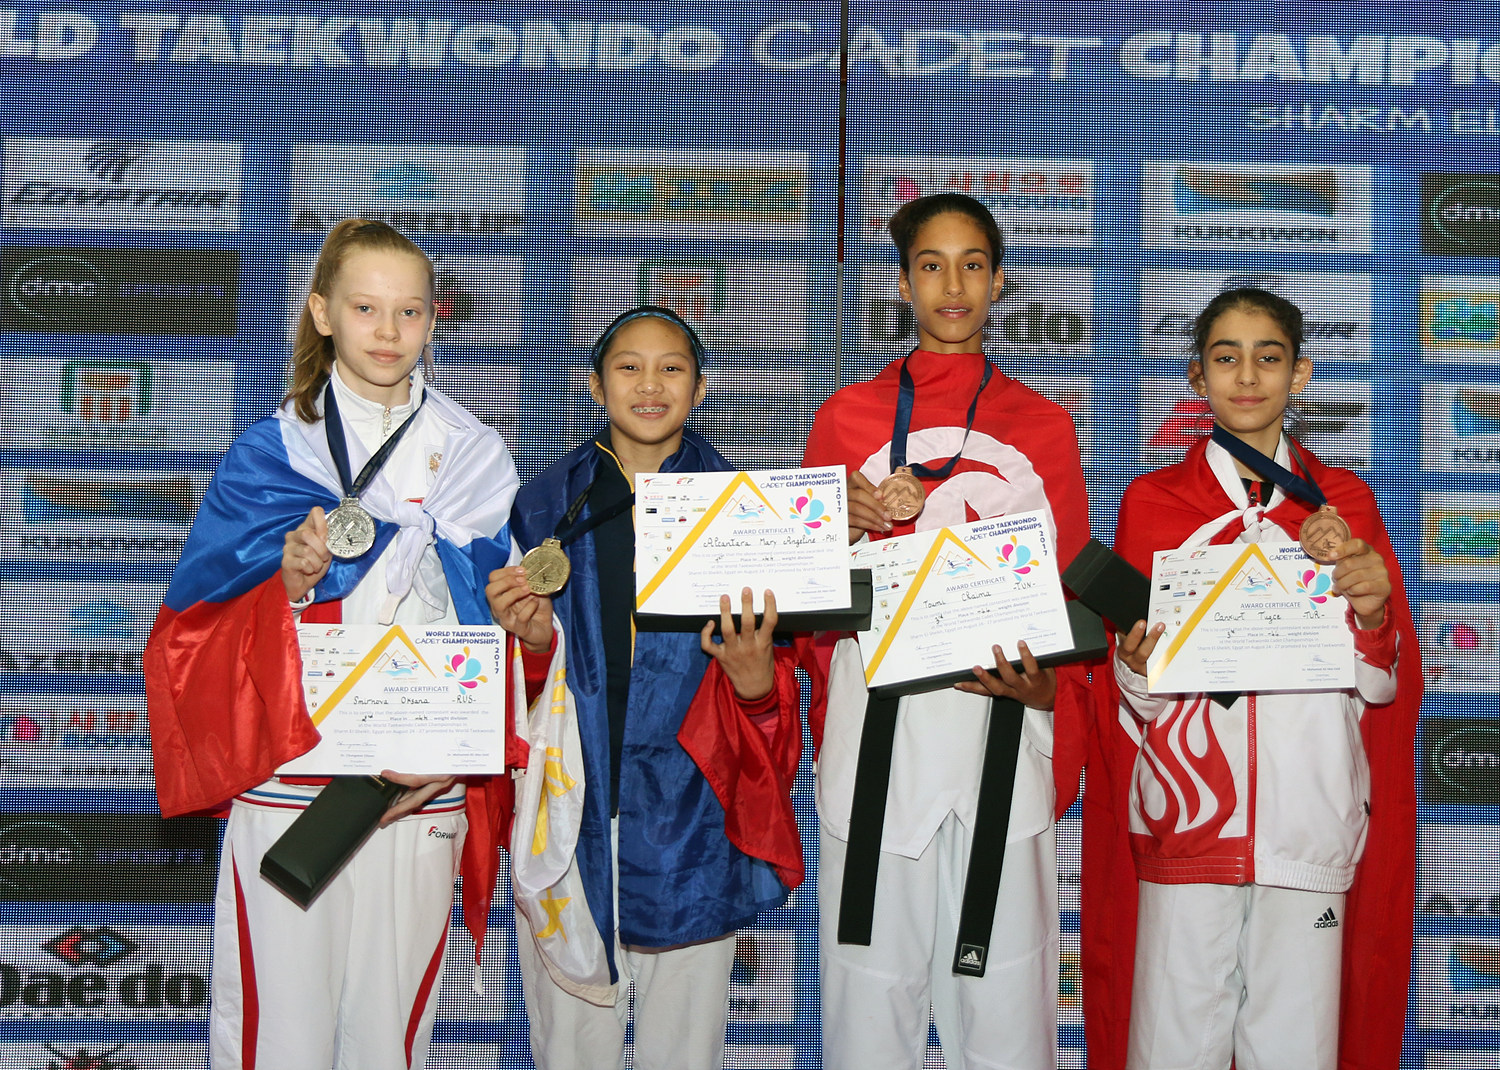 Award ceremony for F-44kg